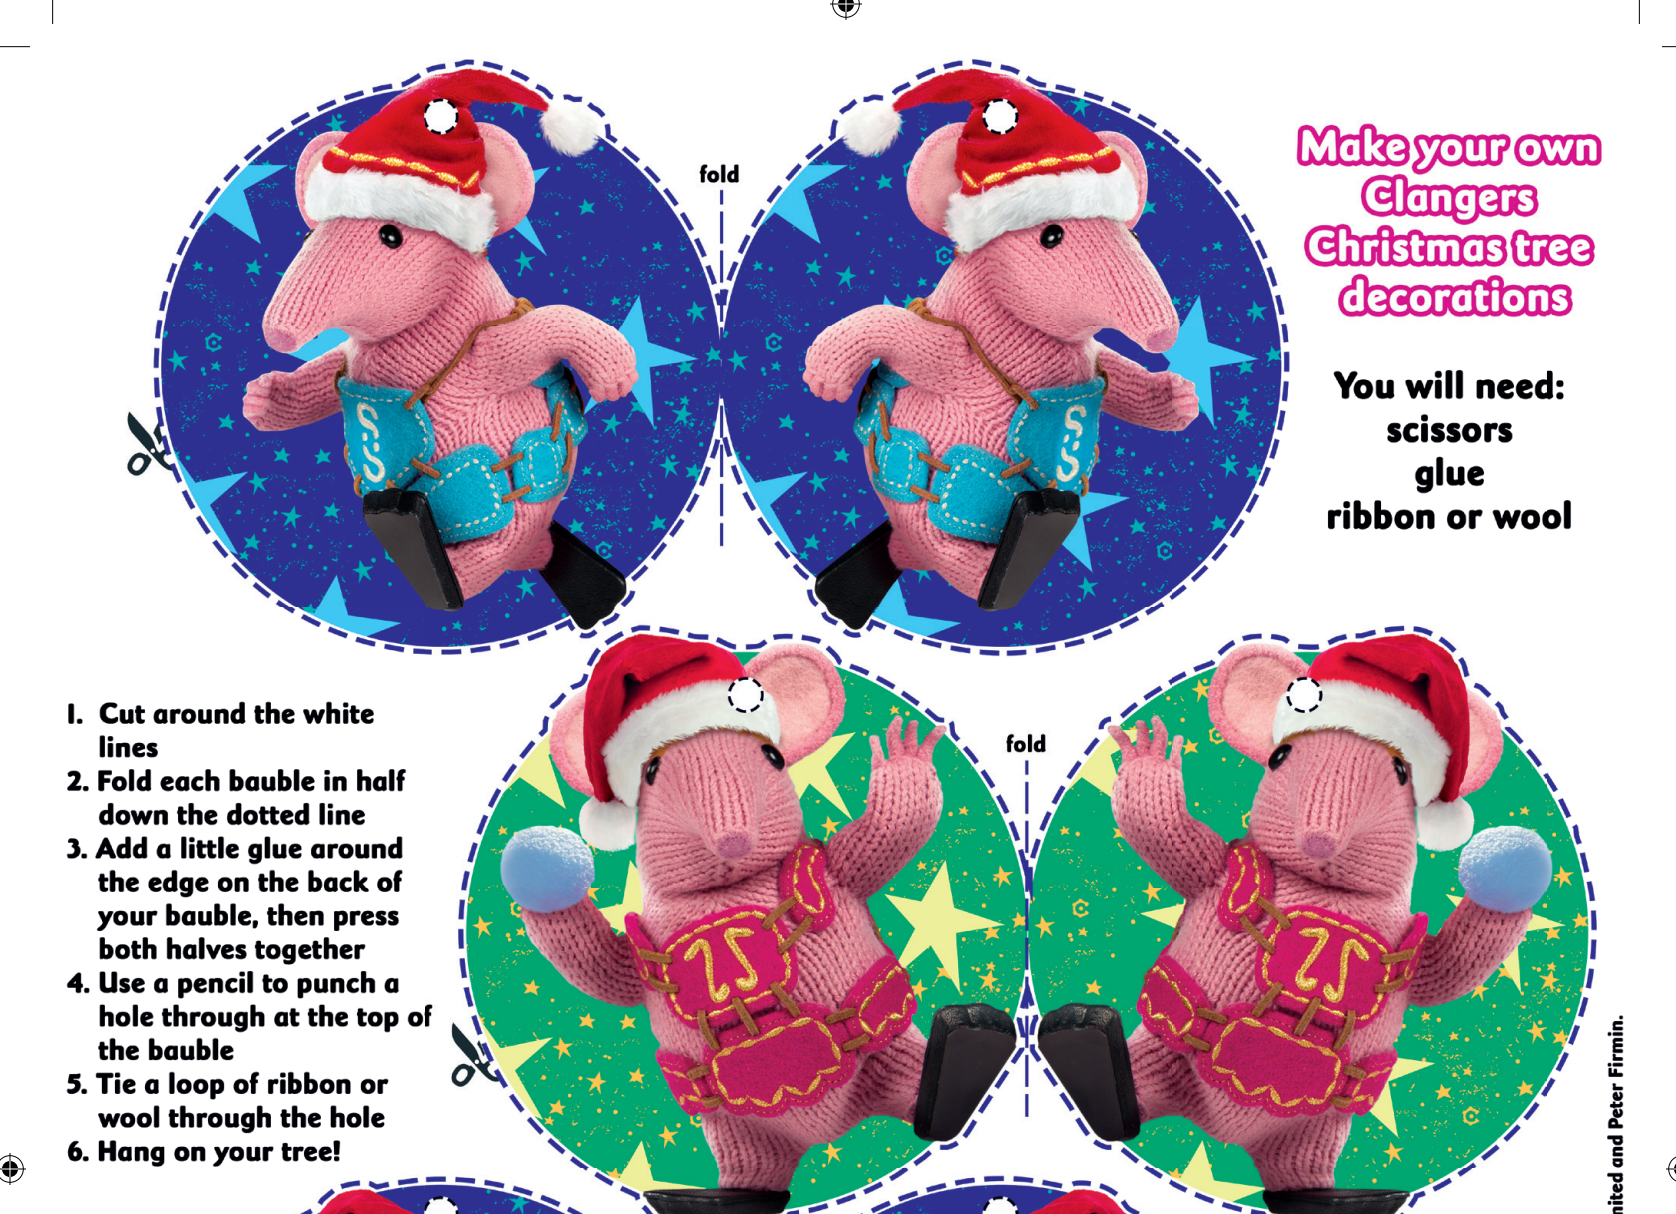 Make your own Clangers Christmas baubles for the Christmas Tree ...